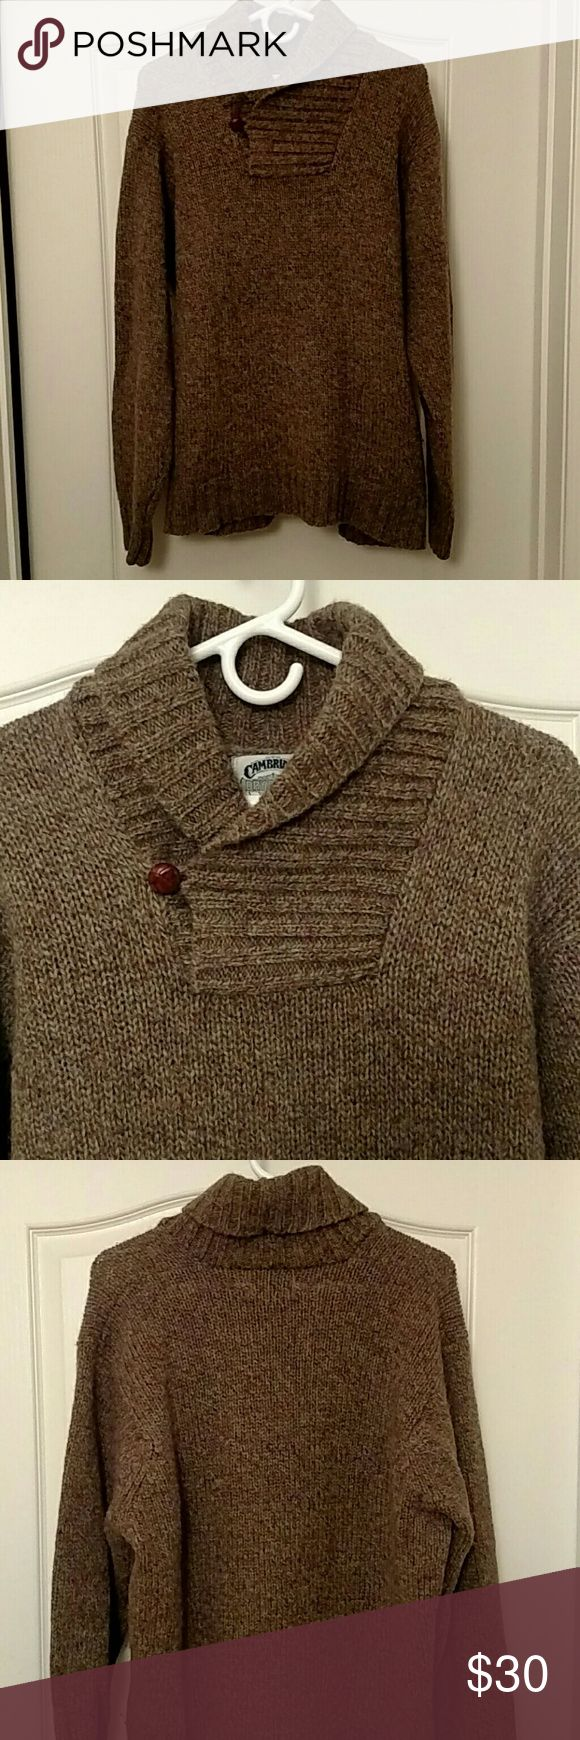 Cambridge Dry Goods Company Men's Wool Sweater This is a men's 100% wool sweater by Cambridge Dry Goods Company! The sweater has a unique folded collar that has one button to fasten it. It is in EXCELLENT CONDITION! A great look for YOU! Cambridge Dry Goods Company Sweaters